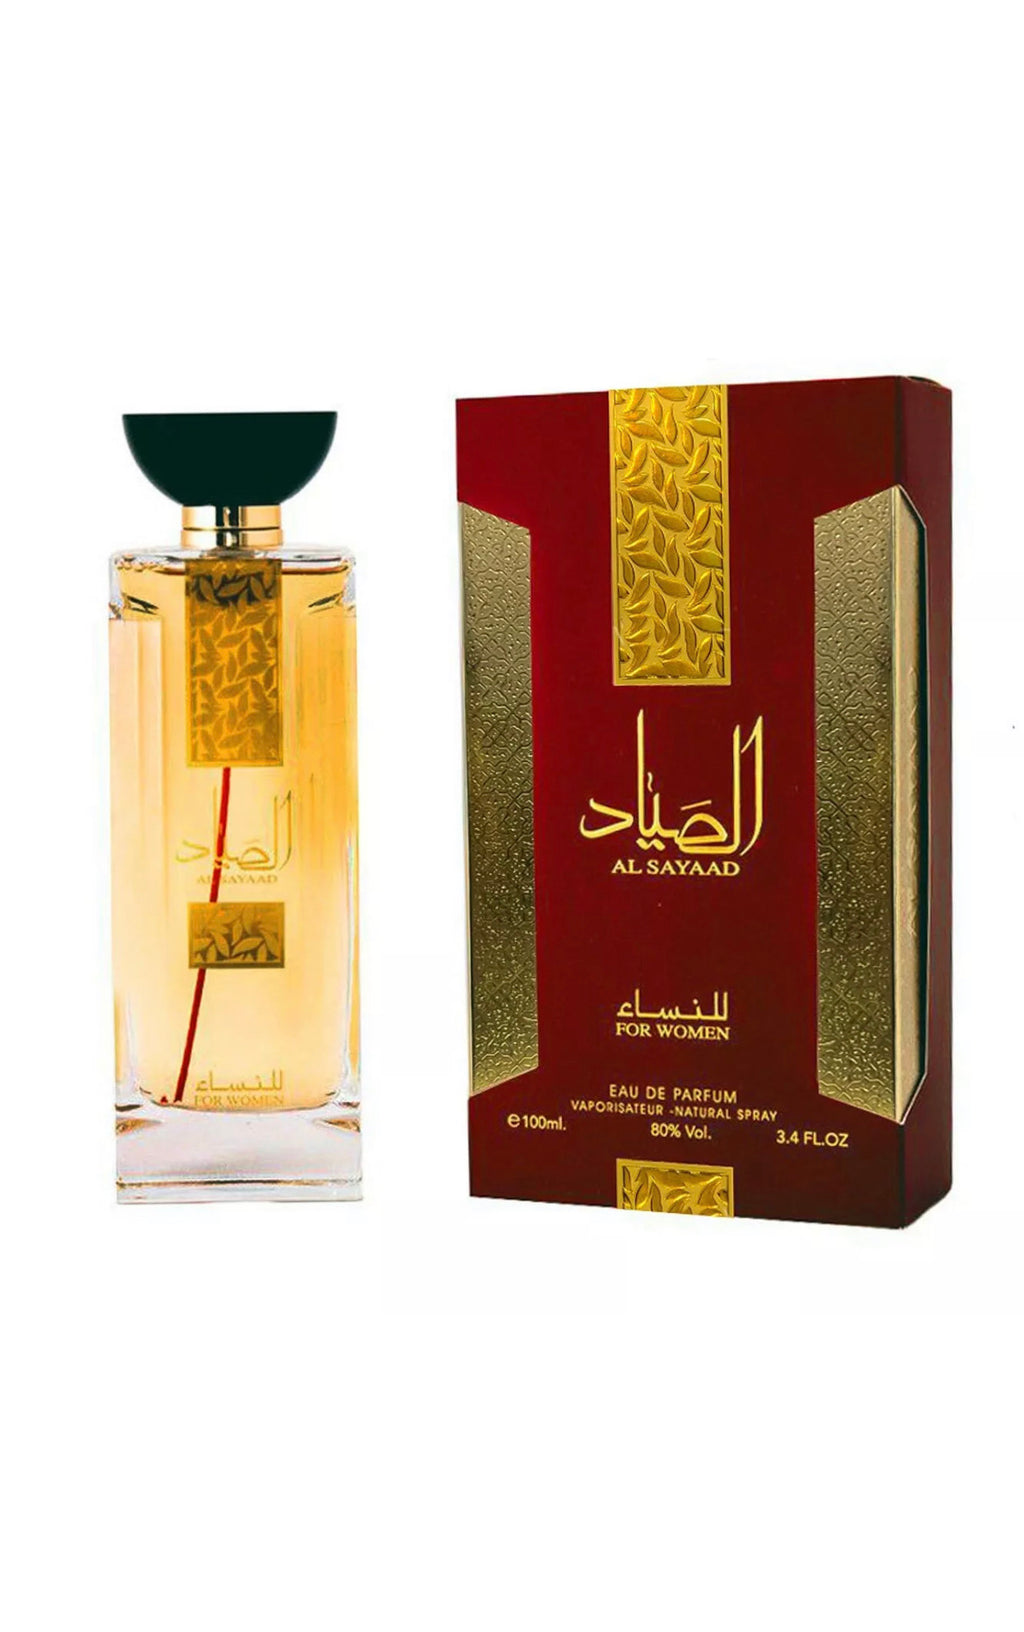 Al Sayad for women by Ard Al Zaafaran